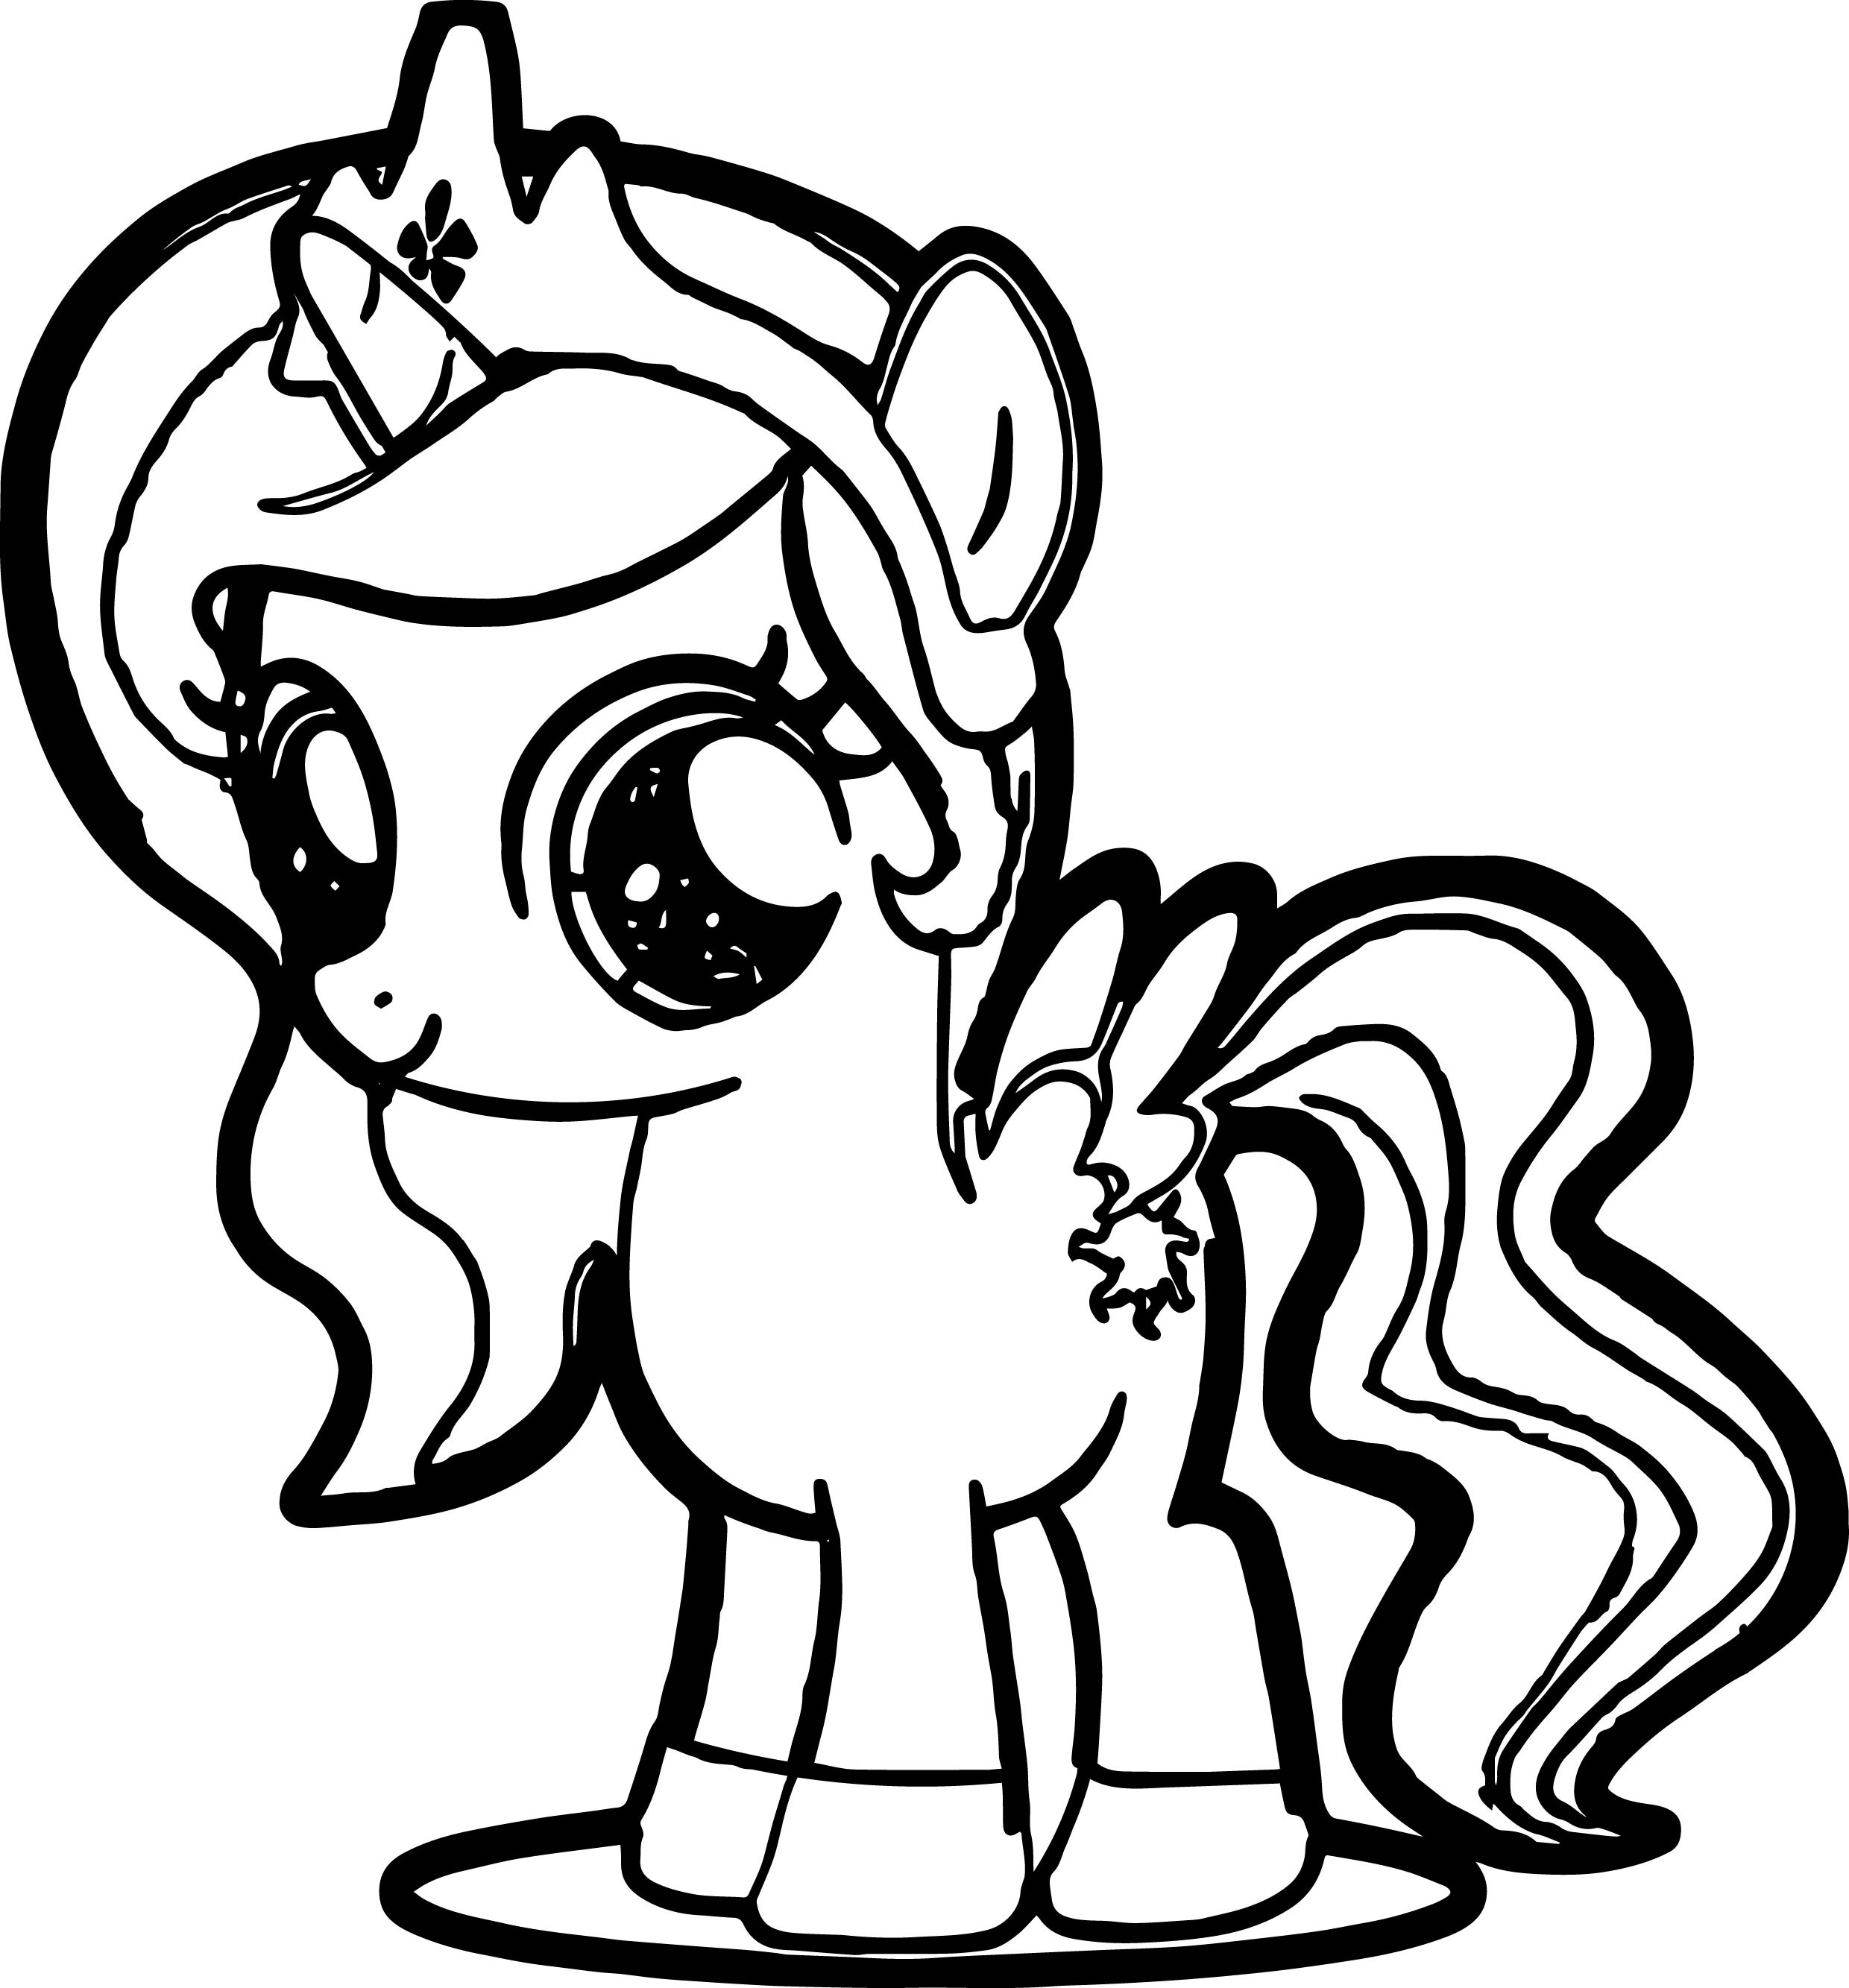 8300 Top Coloring Pages Printable Little Pony Images & Pictures In HD